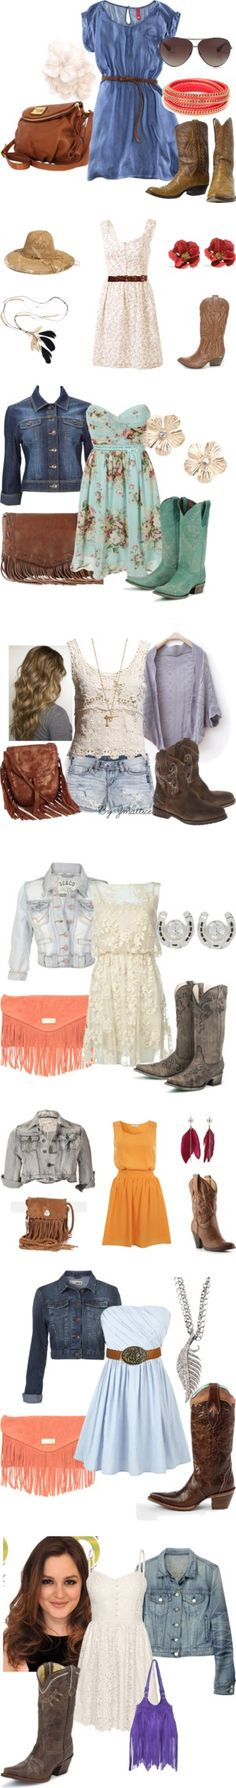 southern outfits